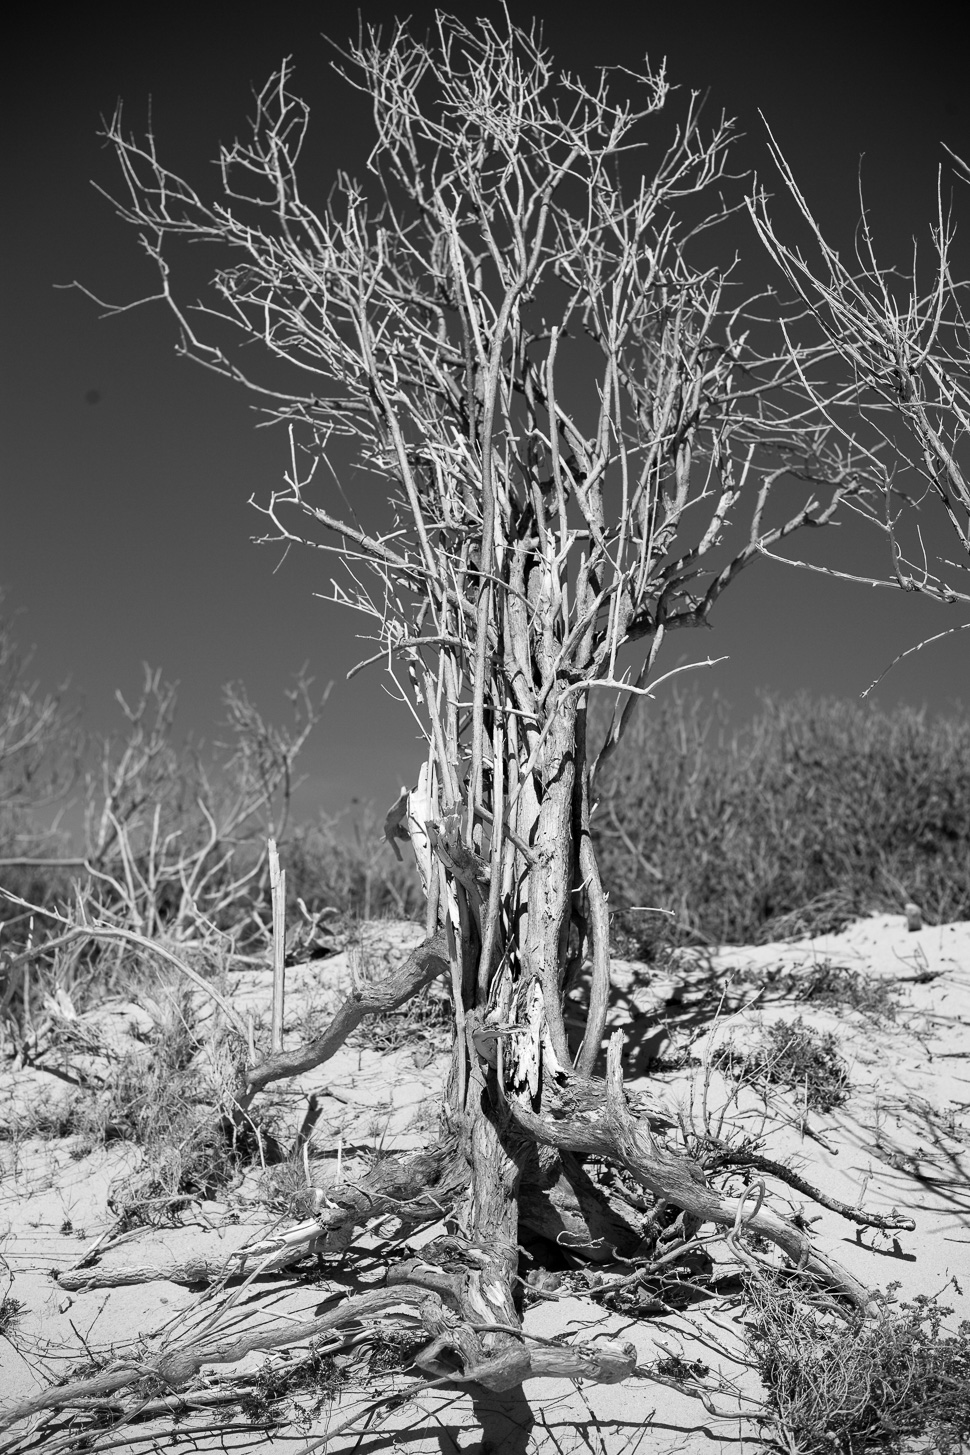 Tree / Arbre - Dune, Salines - Jan 2016